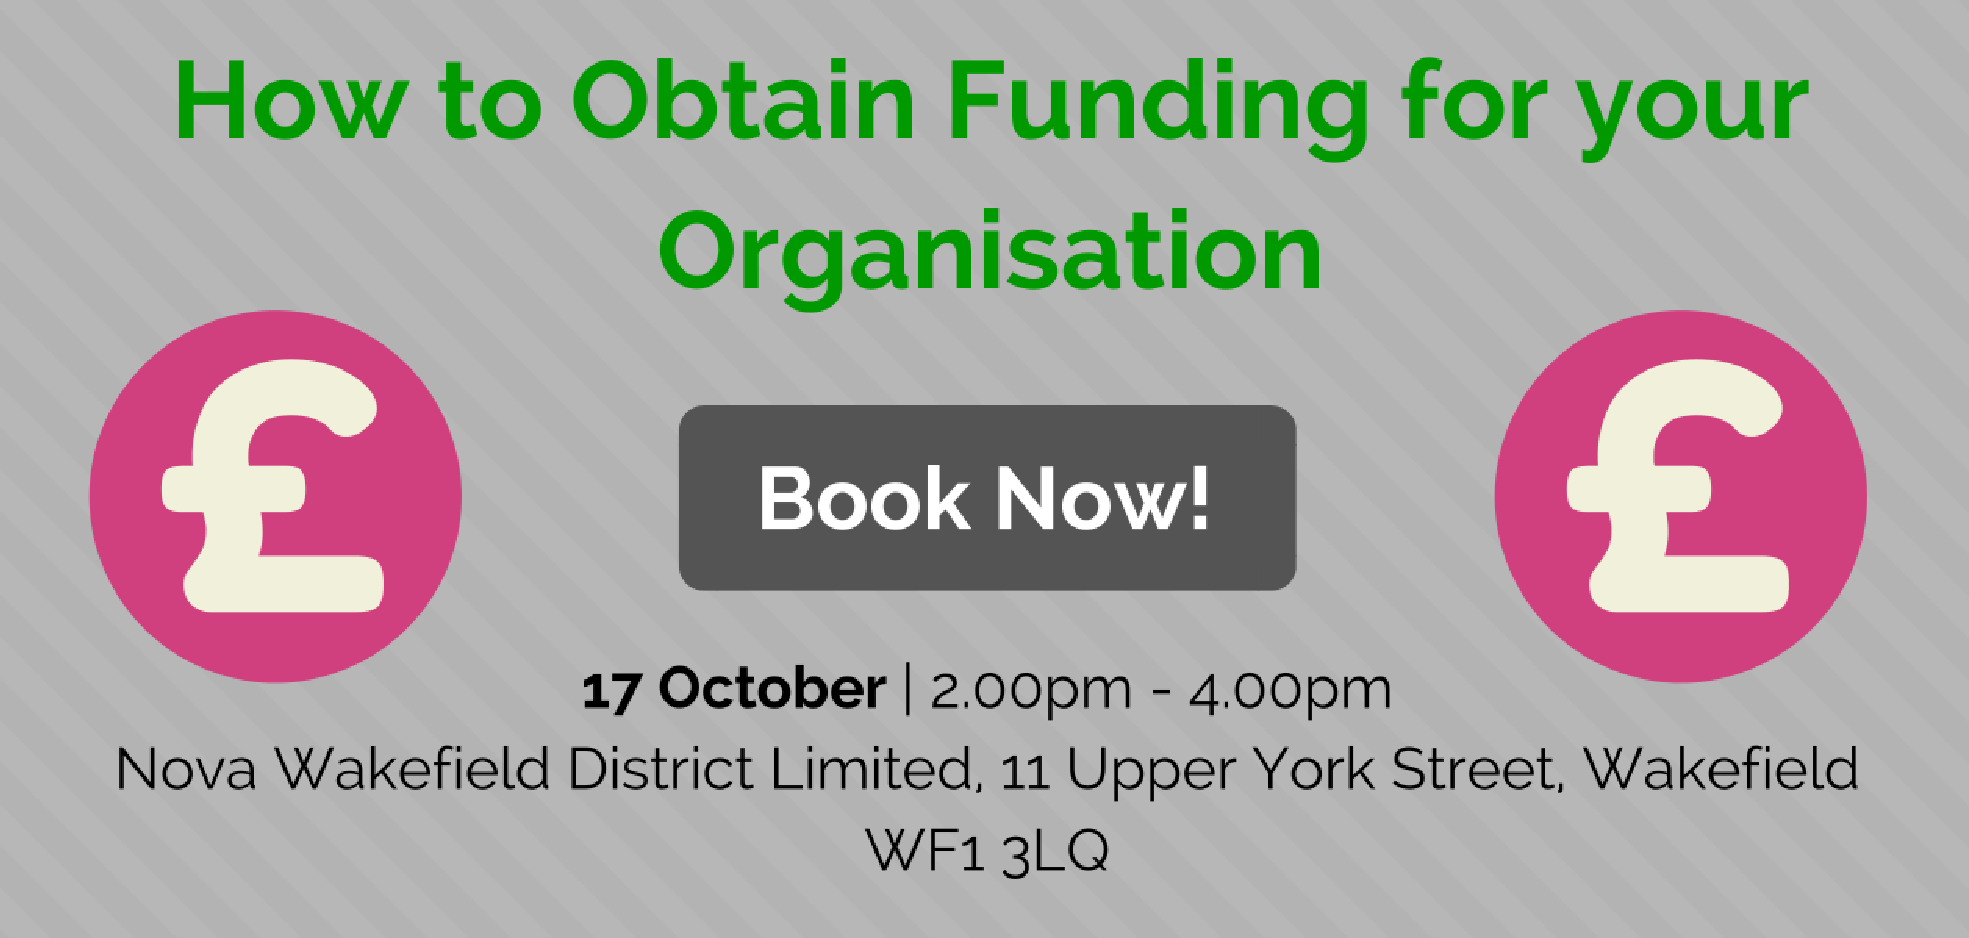 Nova Learning and Networking - How to Obtain Funding for your Organisation